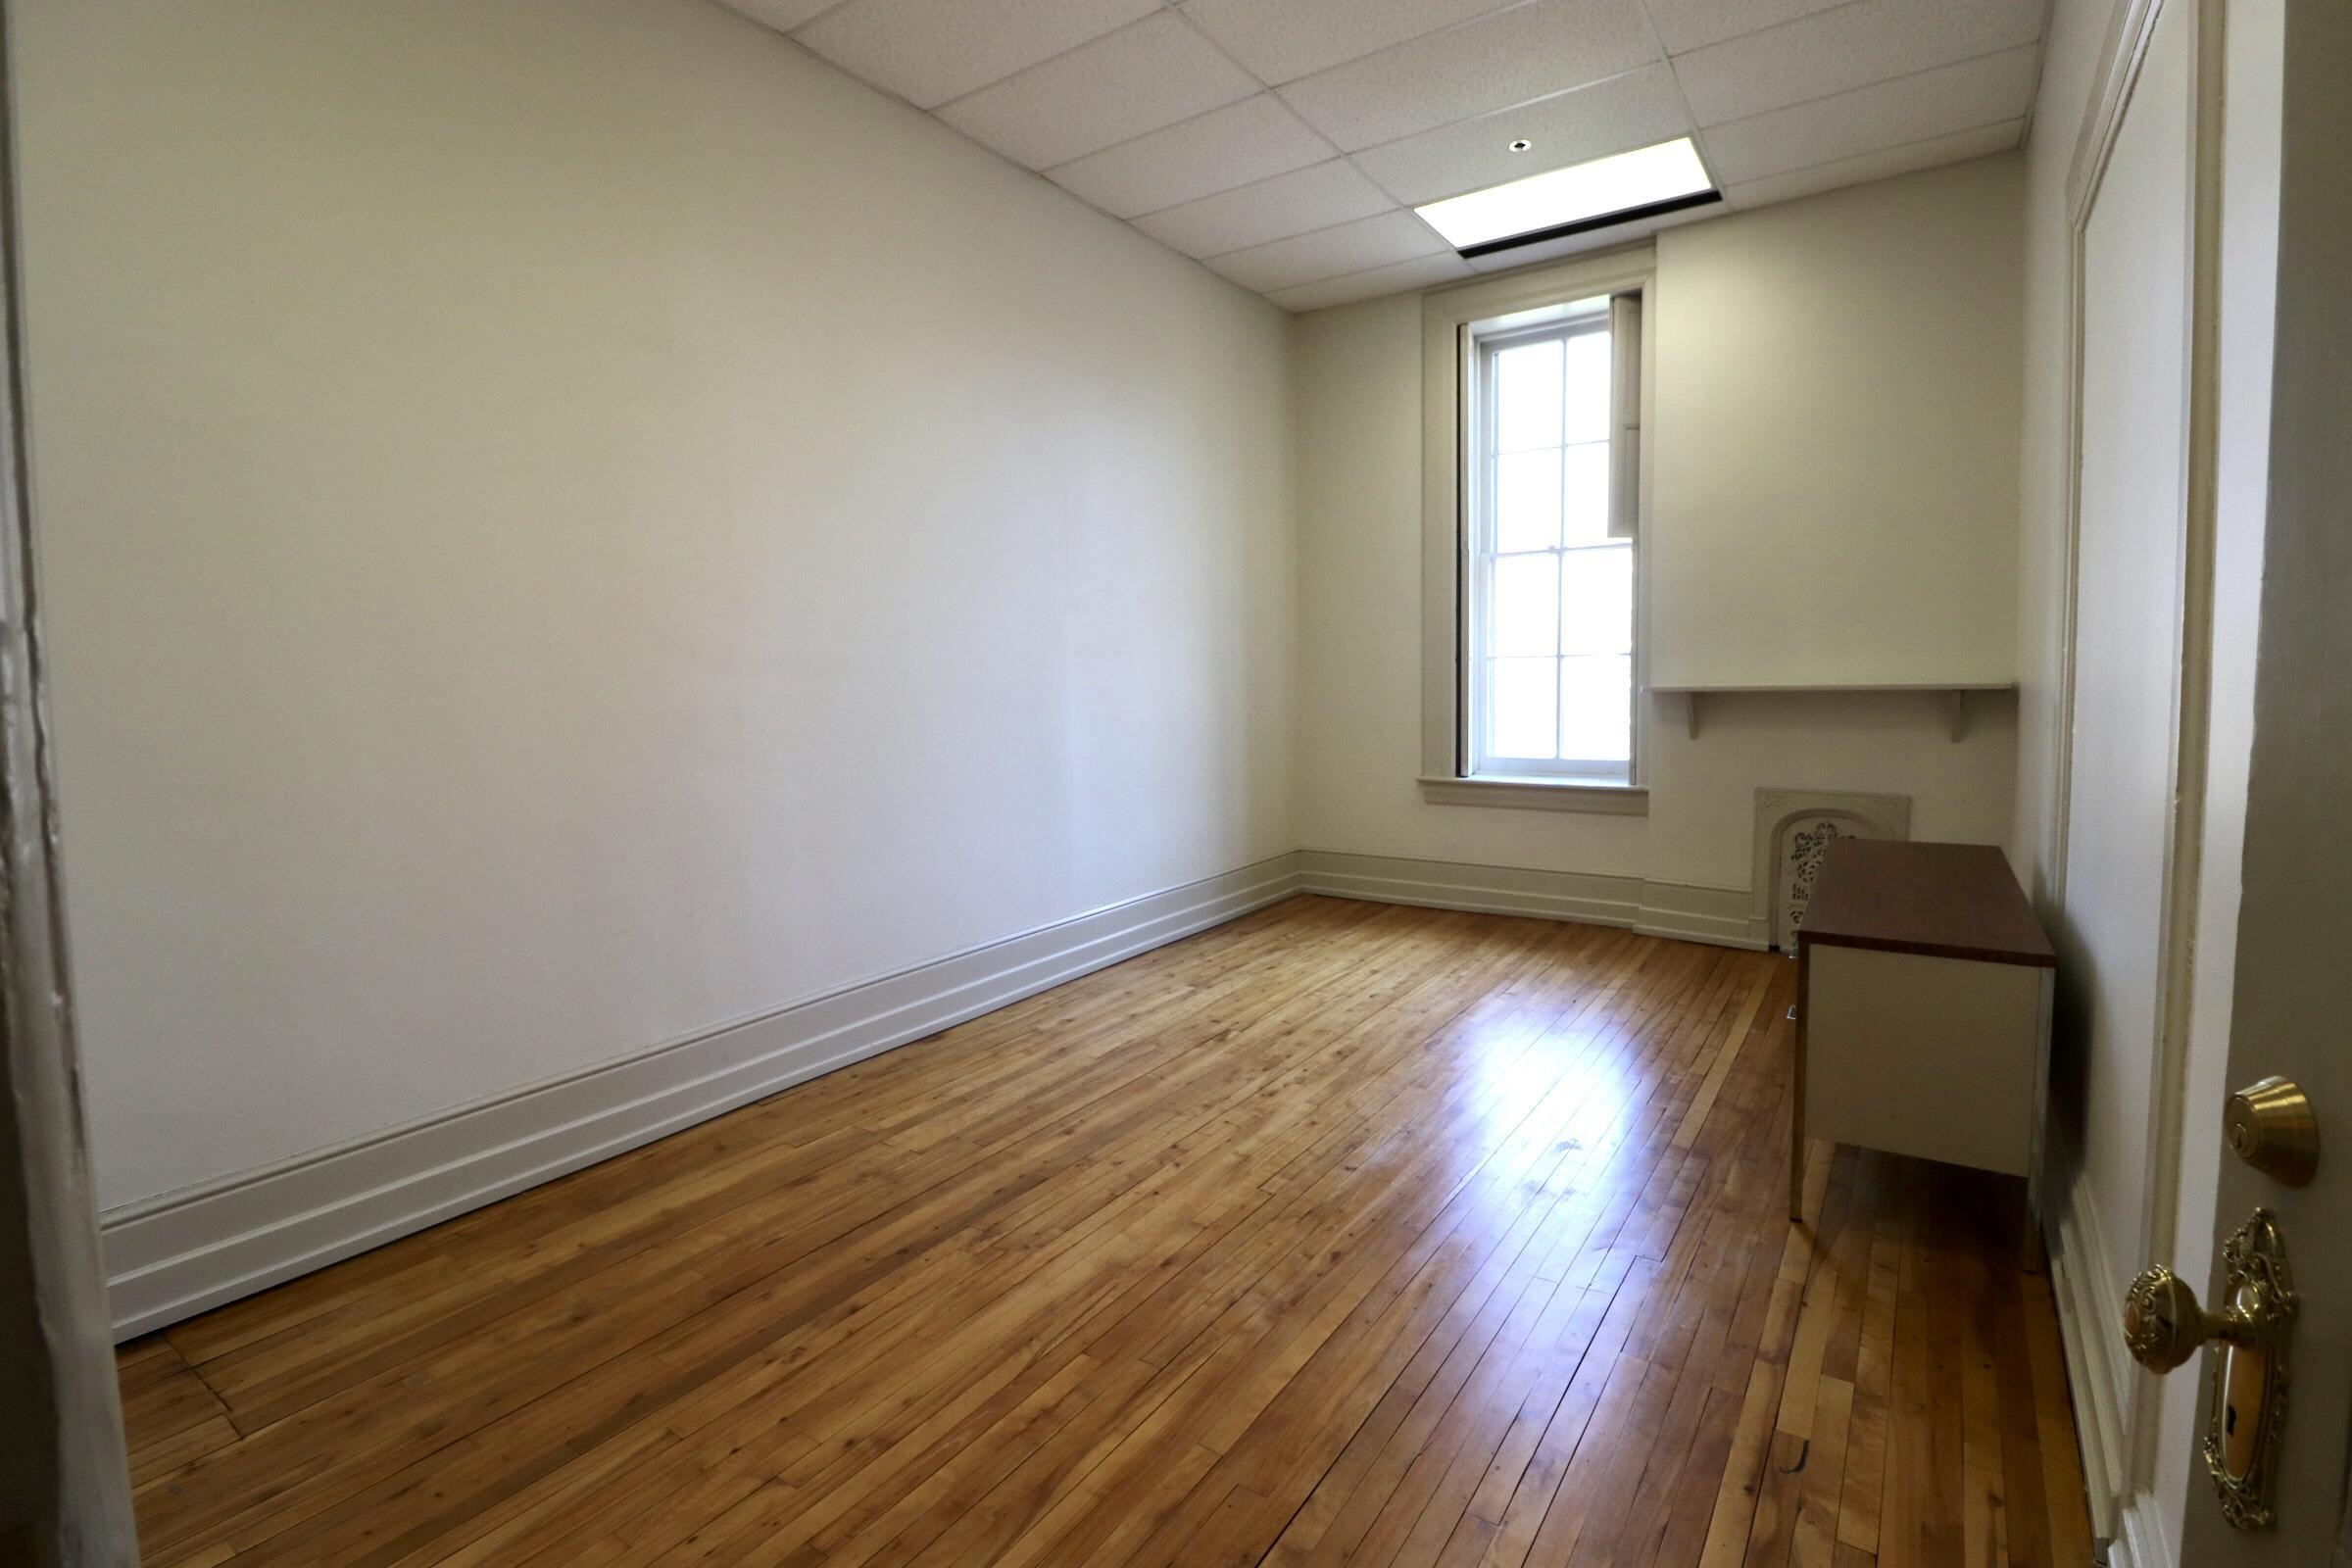 800 FOURTH STREET, Williamsport, PA 17701, ,1 BathroomBathrooms,Comm/ind lease,For sale,FOURTH,WB-92281